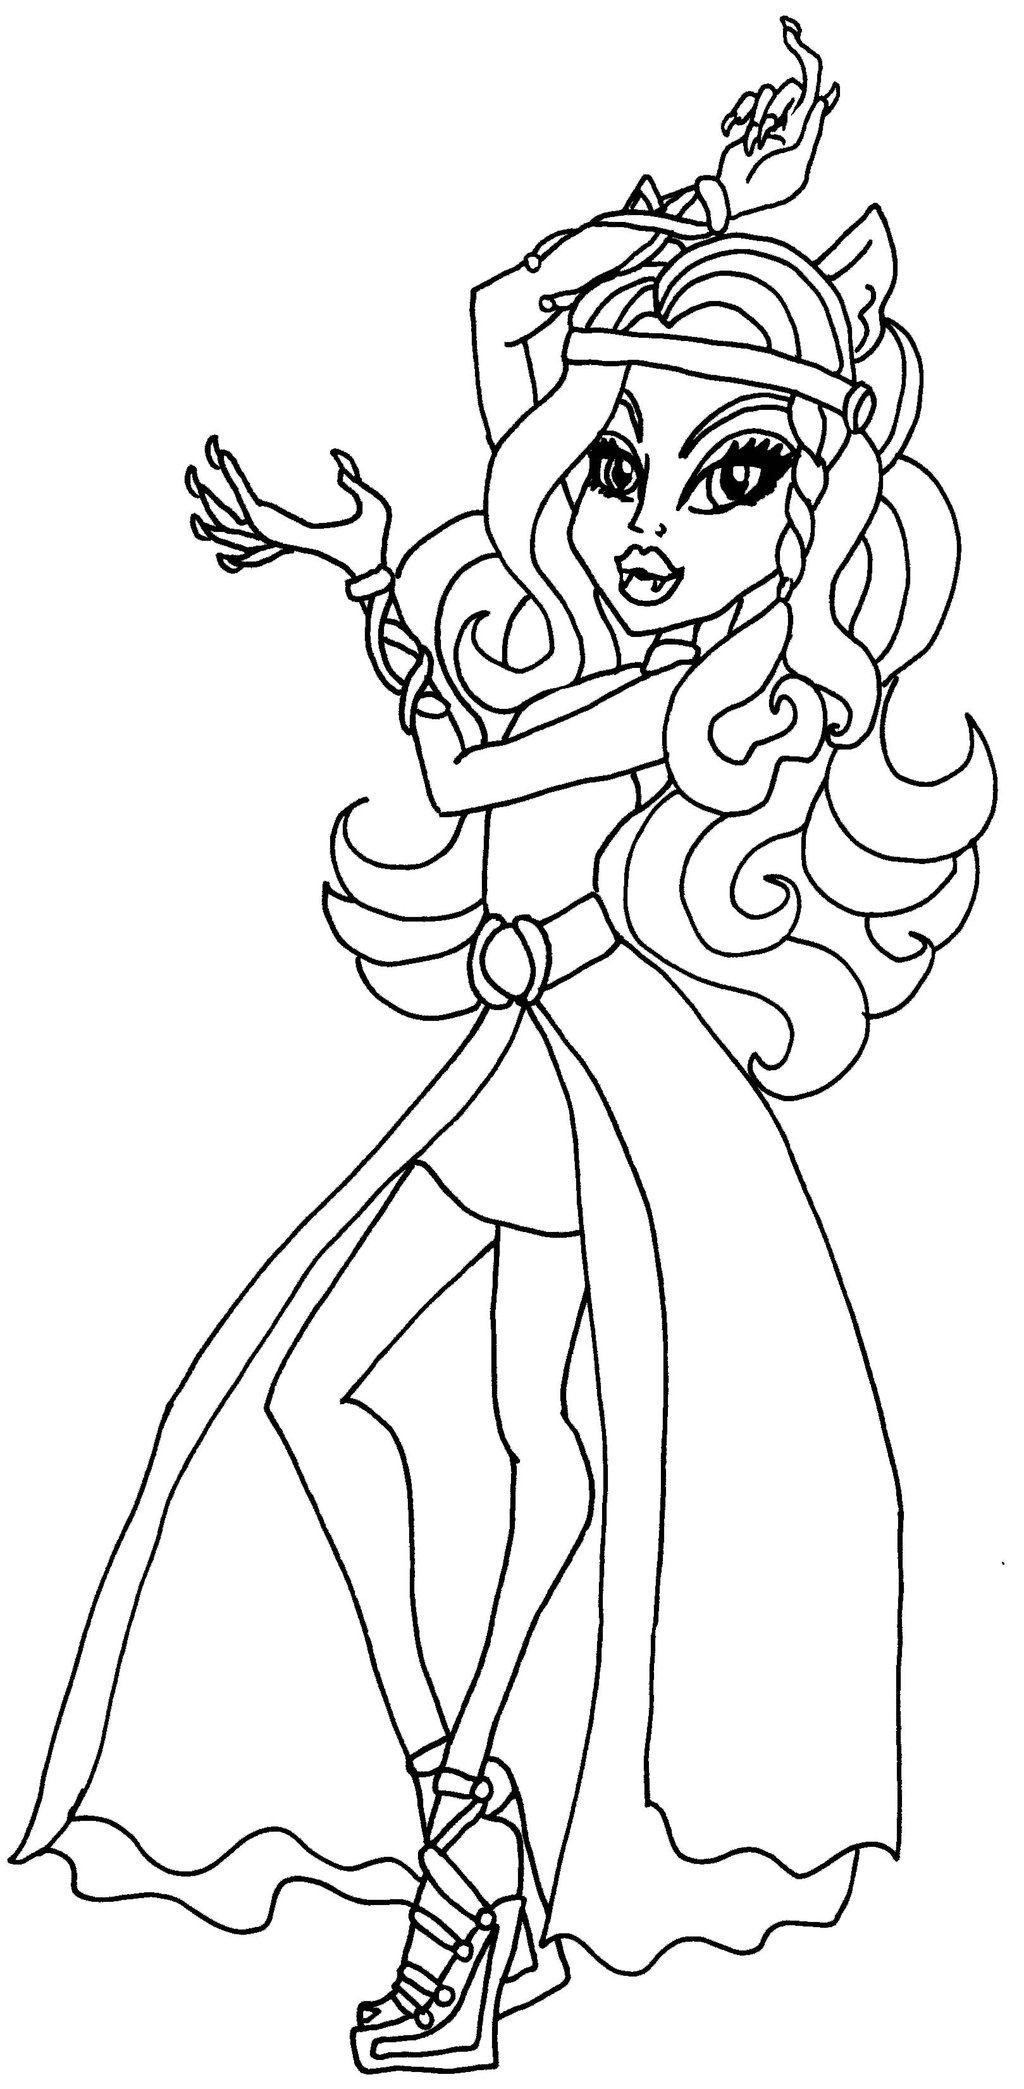 Monster High Clawdeen Ausmalbilder : Coloriage Monster High Clawdeen Dessin De Monster High Imprimer